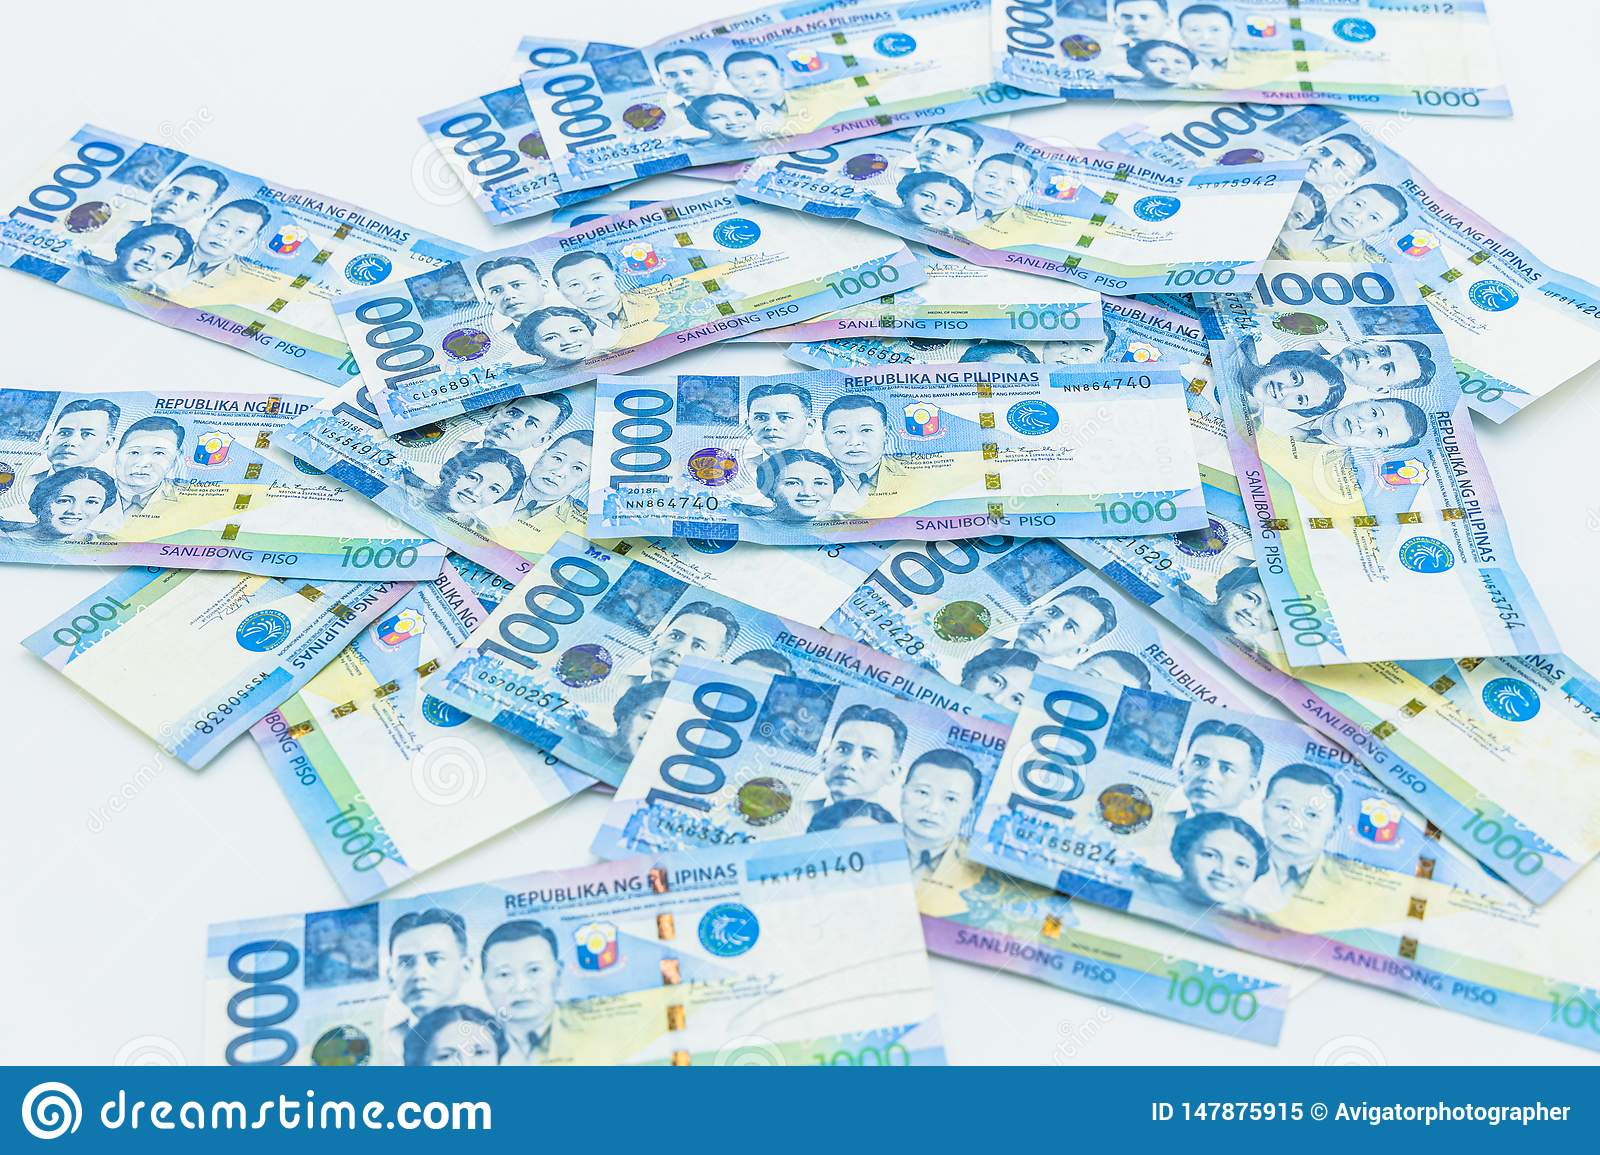 Philippine 1000 Peso Bill, Philippines Money Currency